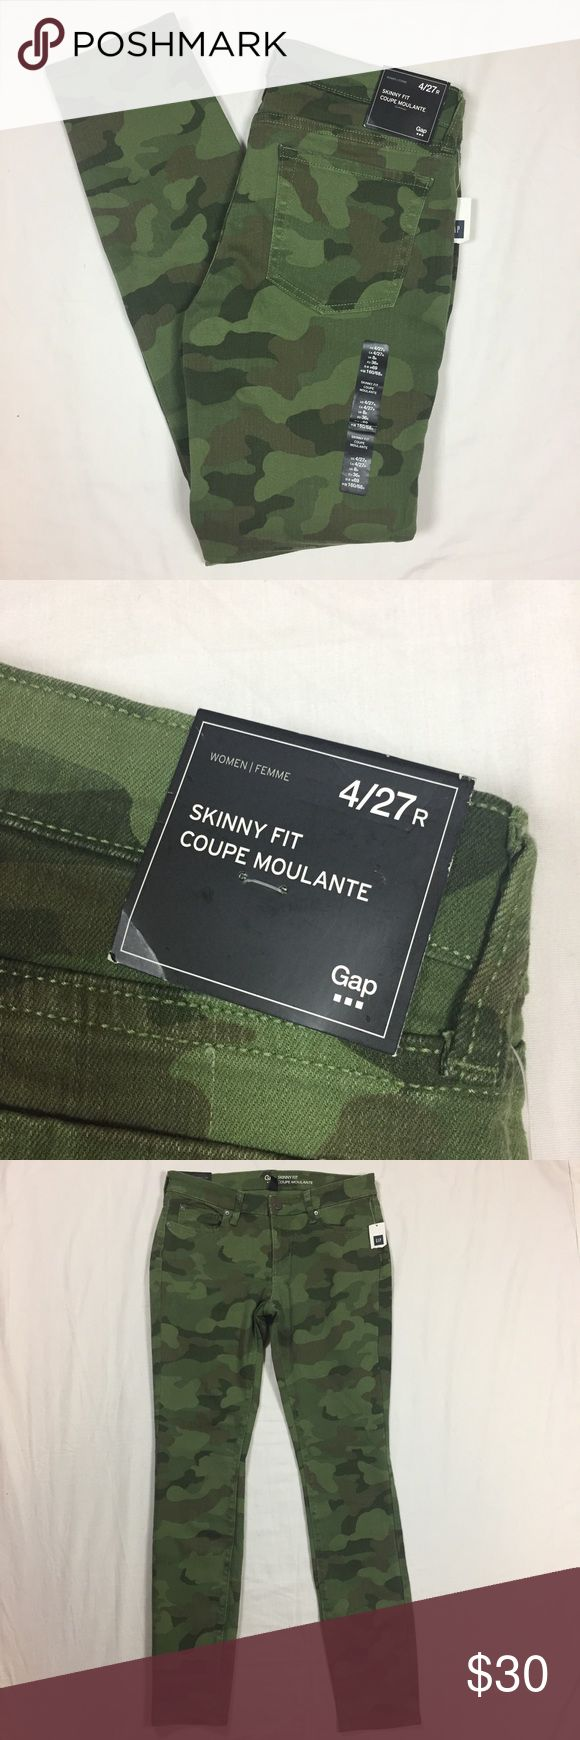 """GAP green camouflage skinny jeans size 4 Brand new with tags. Stretchy cotton, elastane blend fabric. Classic five pocket design. 15"""" across waistband. 29"""" inseam. GAP Jeans Skinny"""